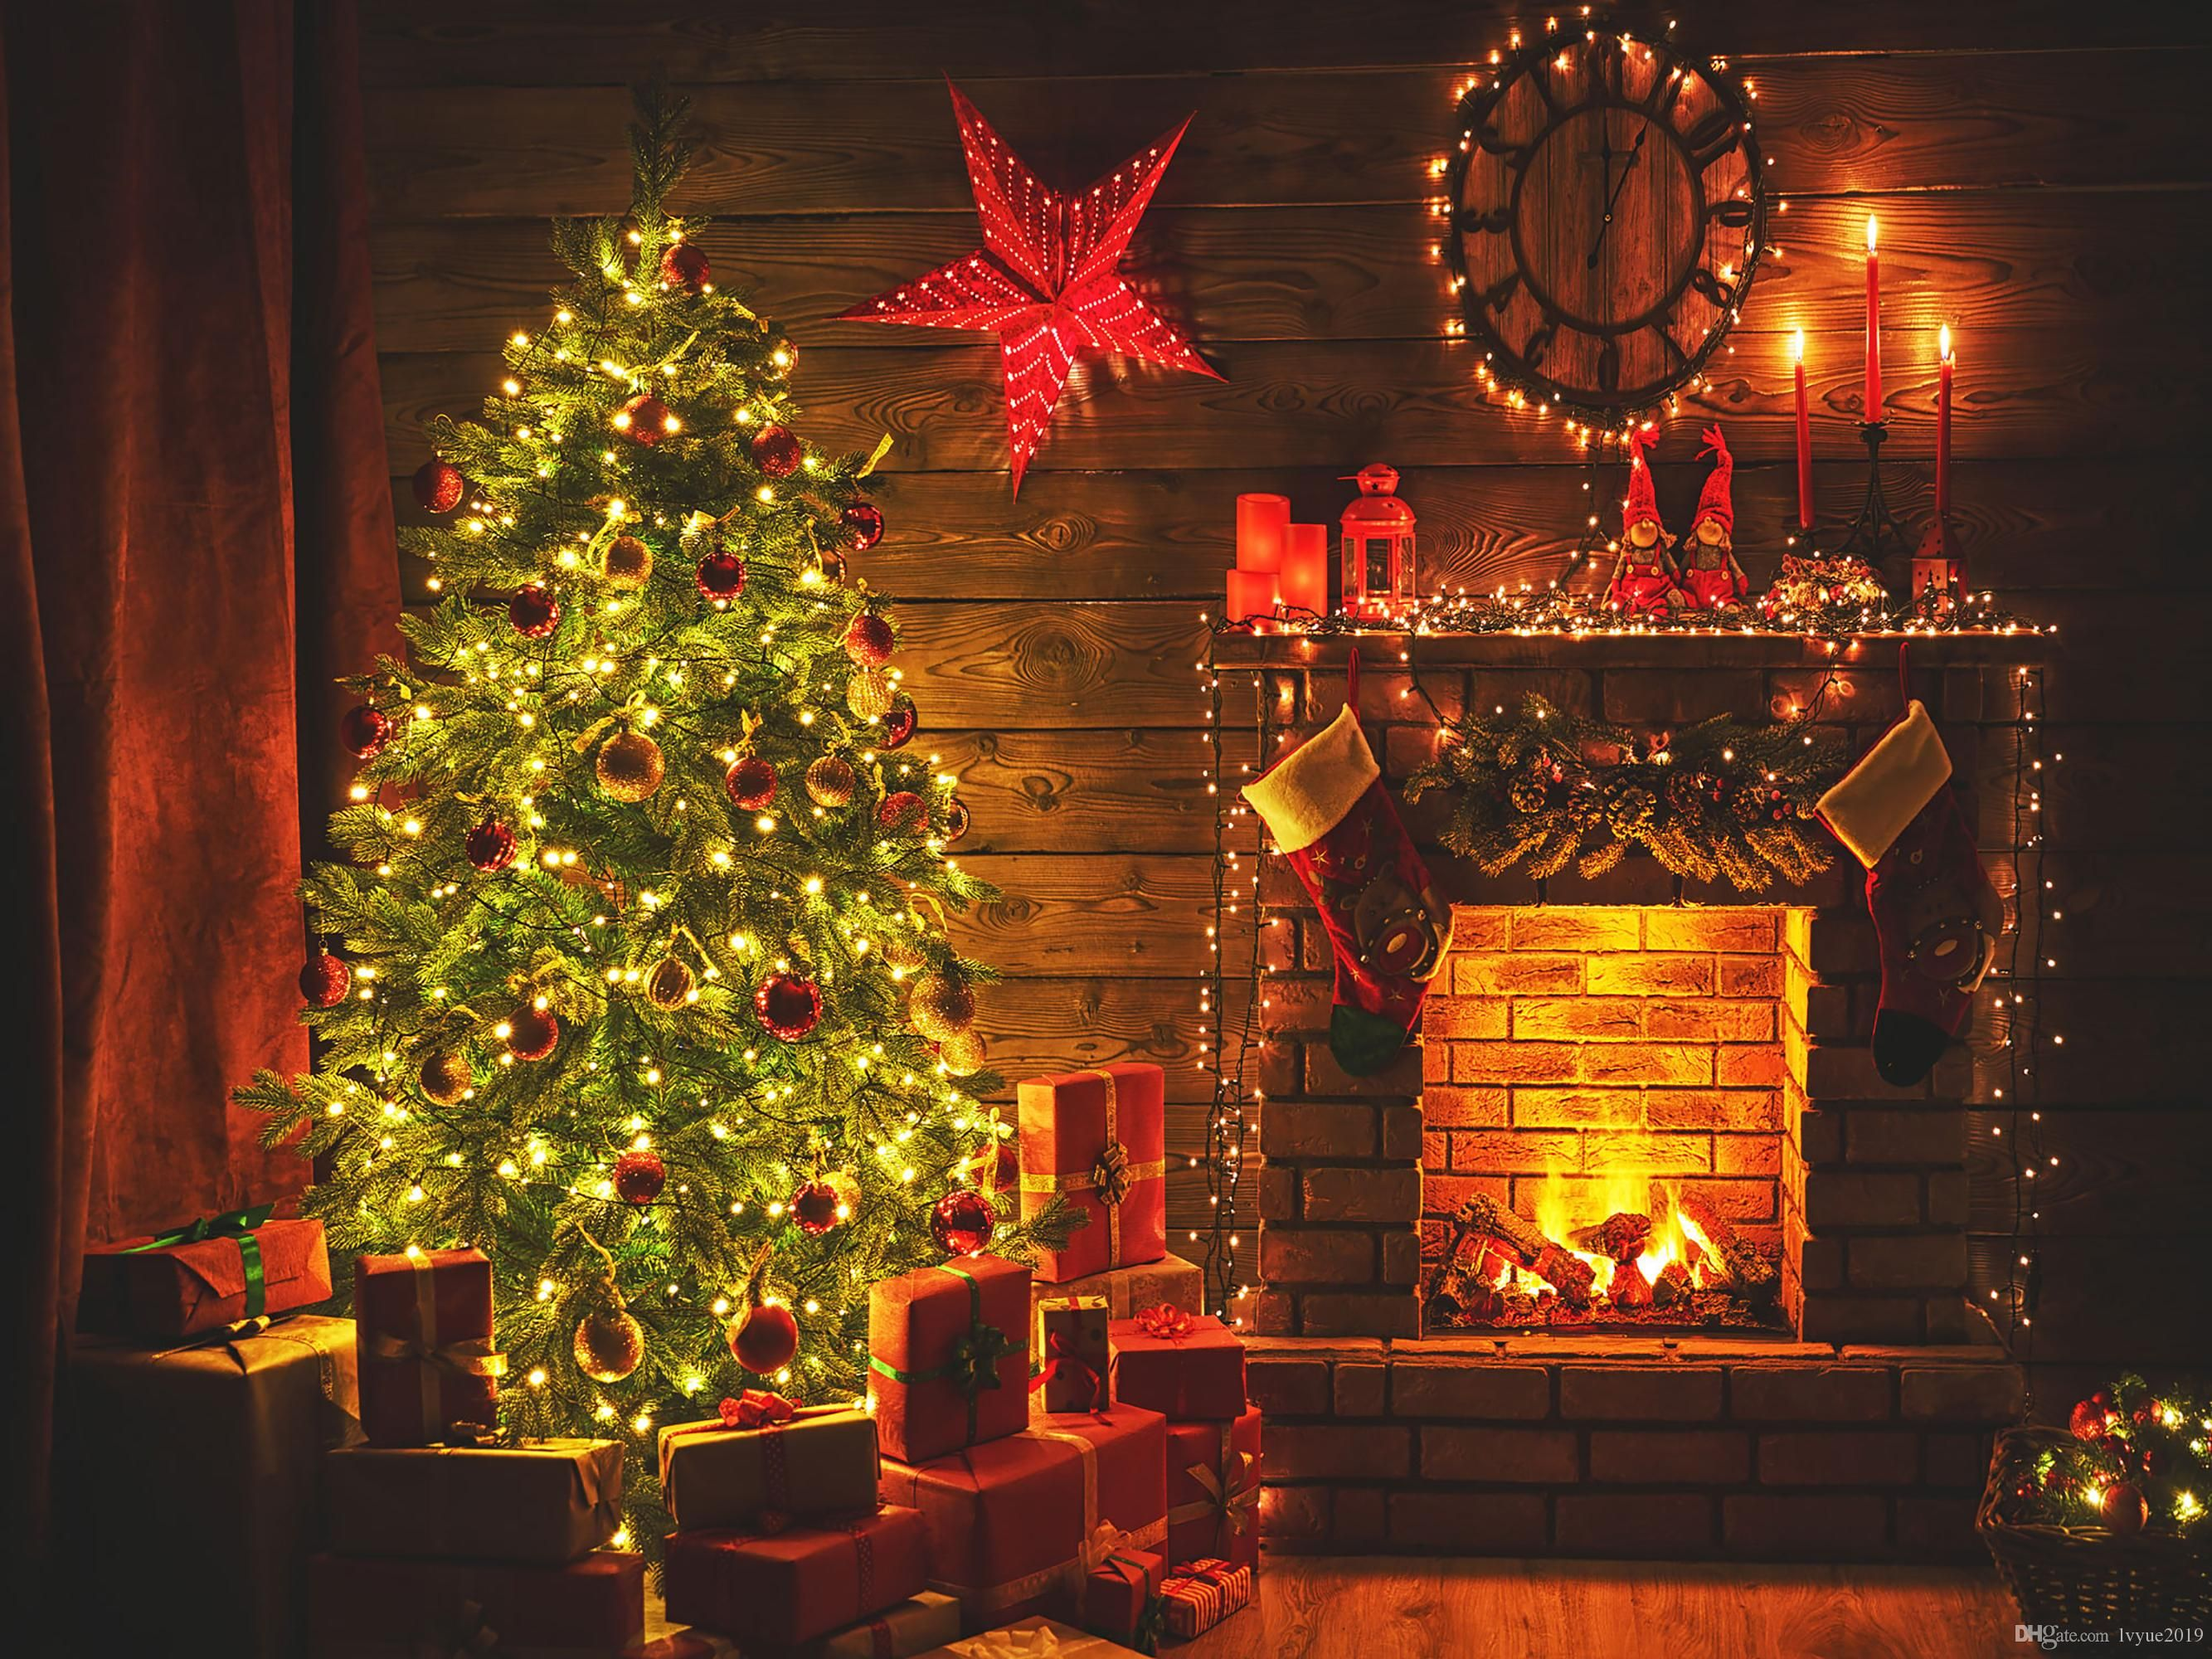 2021 Night Interior Christmas Fireplace Gifts Vinyl Photography Backdrops Magic Glowing Tree Photo Booth Backgrounds For Christmas Studio Props From Lvyue2019 Christmas Fireplace Photo Booth Background Photography Backdrops